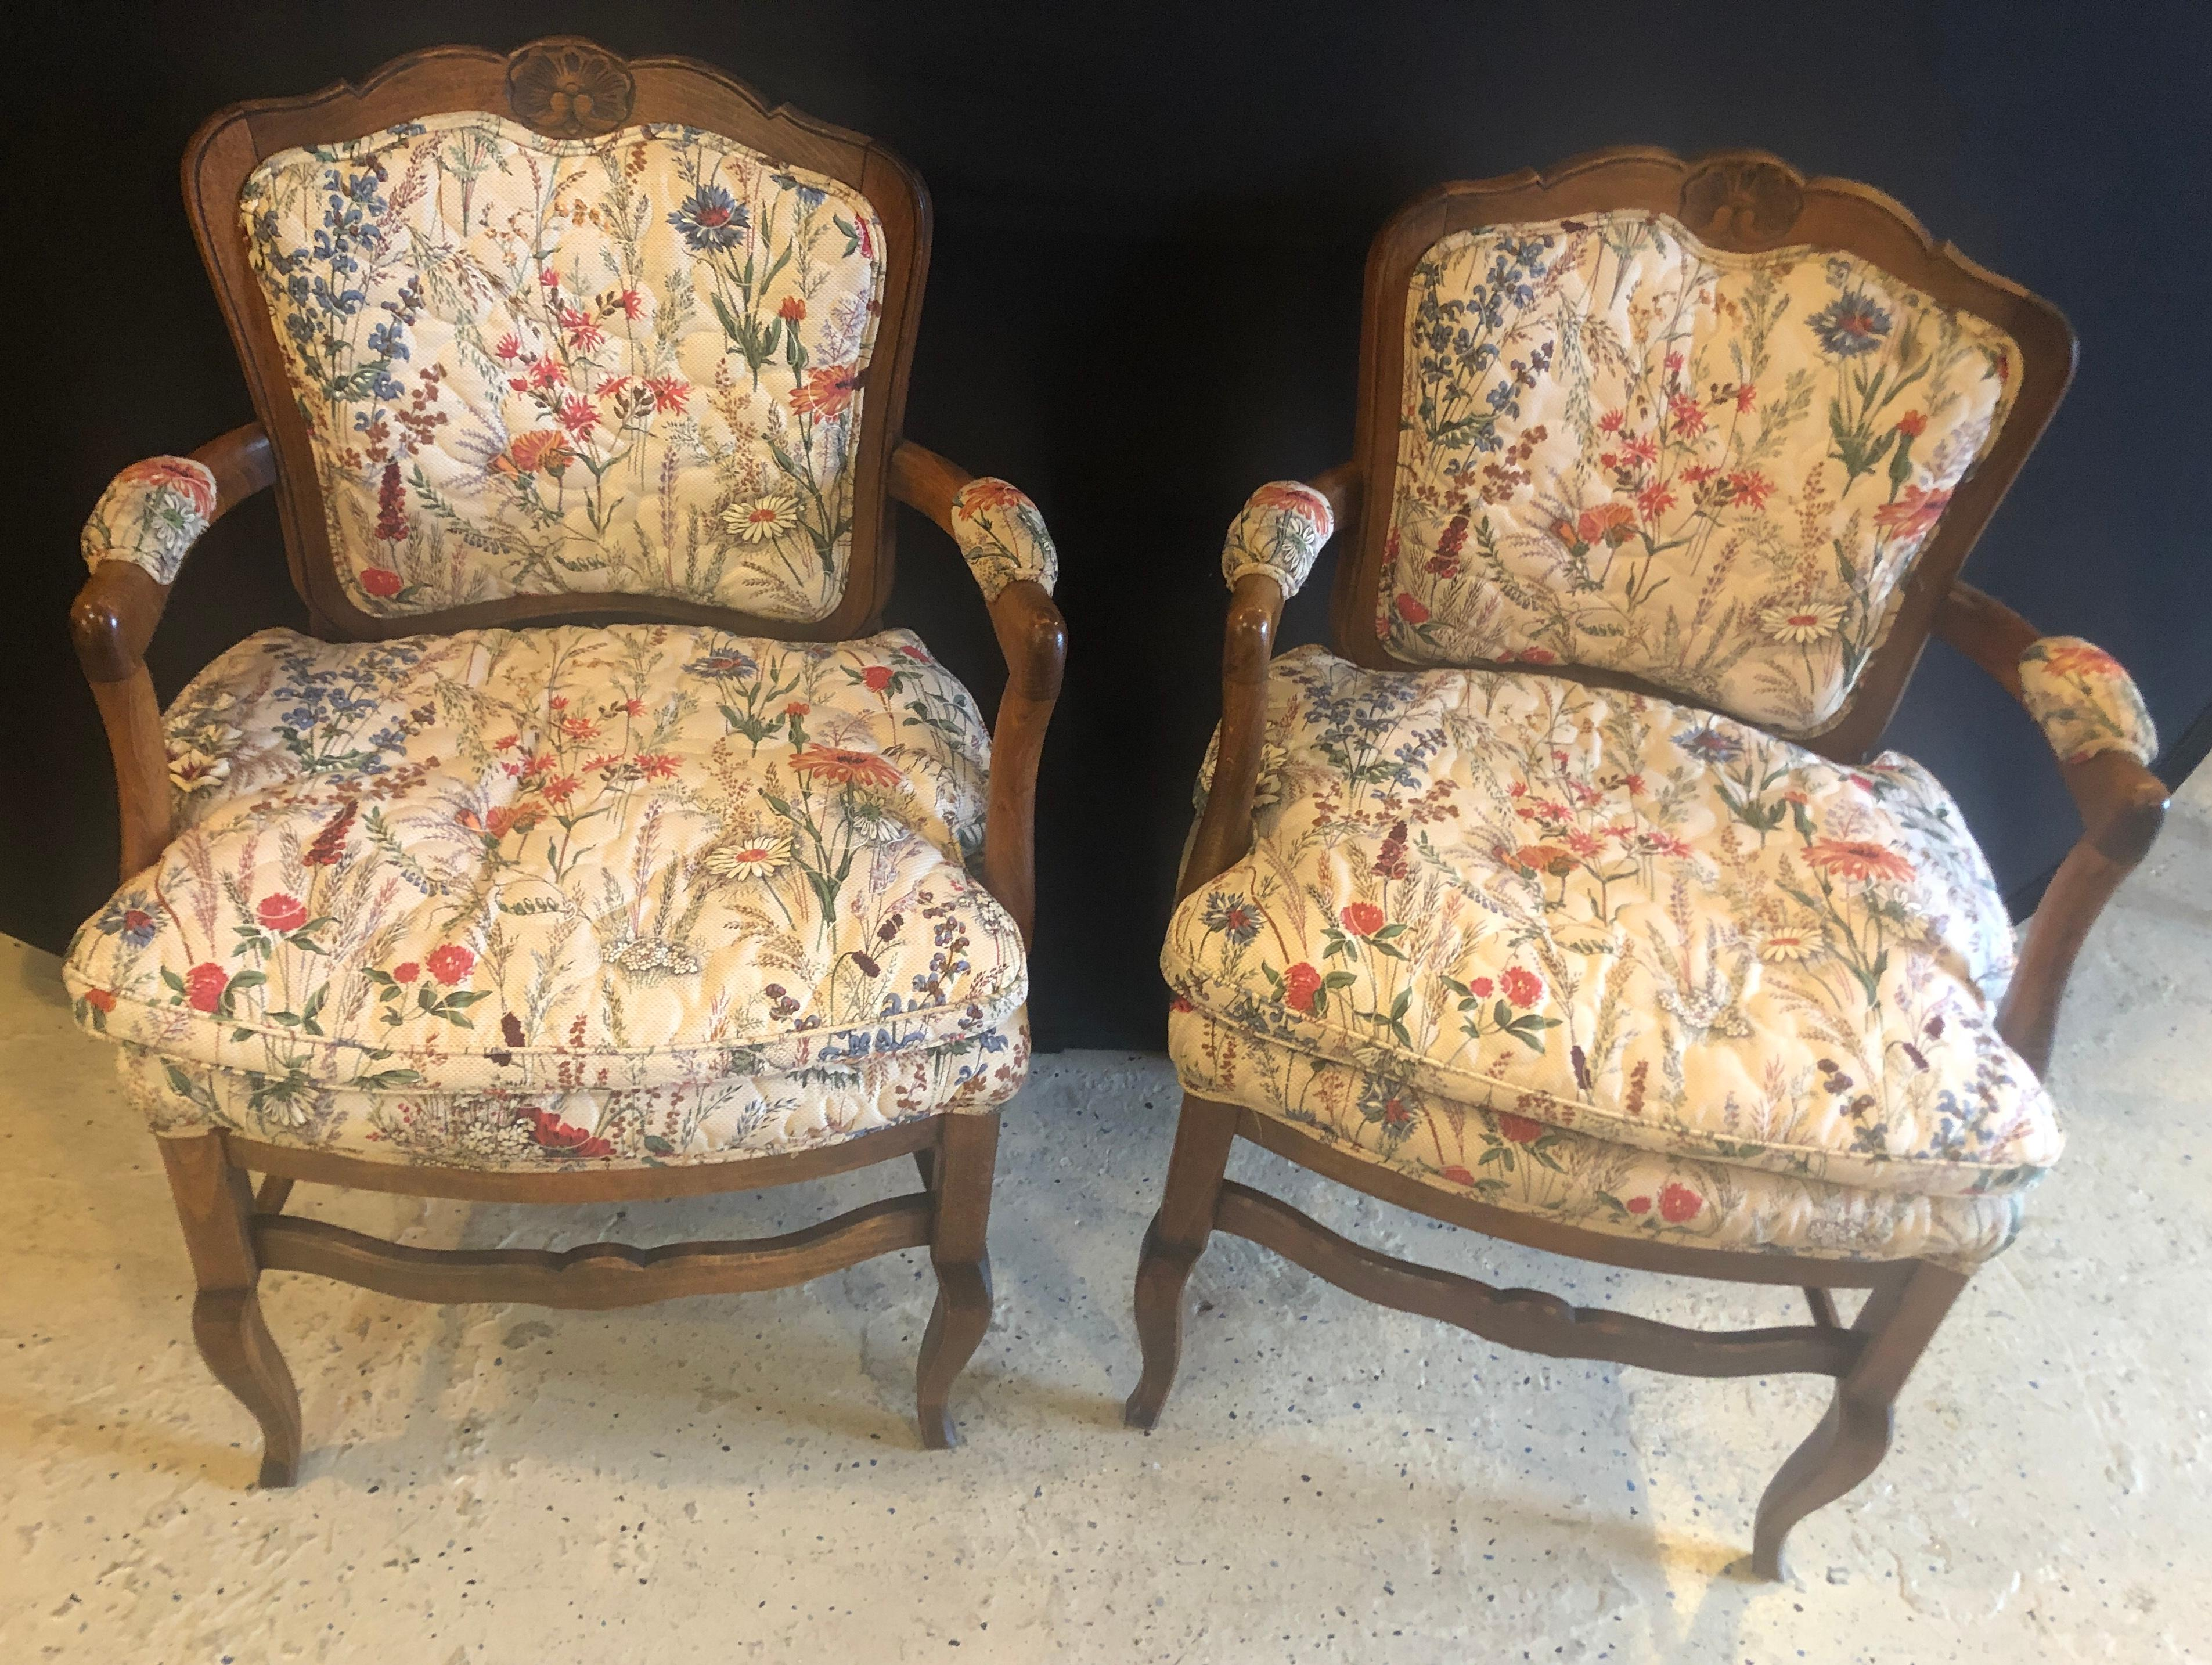 Country French Boudoir Fauteuil Louis Xv Chairs In Quilted Like Upholstery Pair For Sale At 1stdibs - Fauteuils Boudoirs